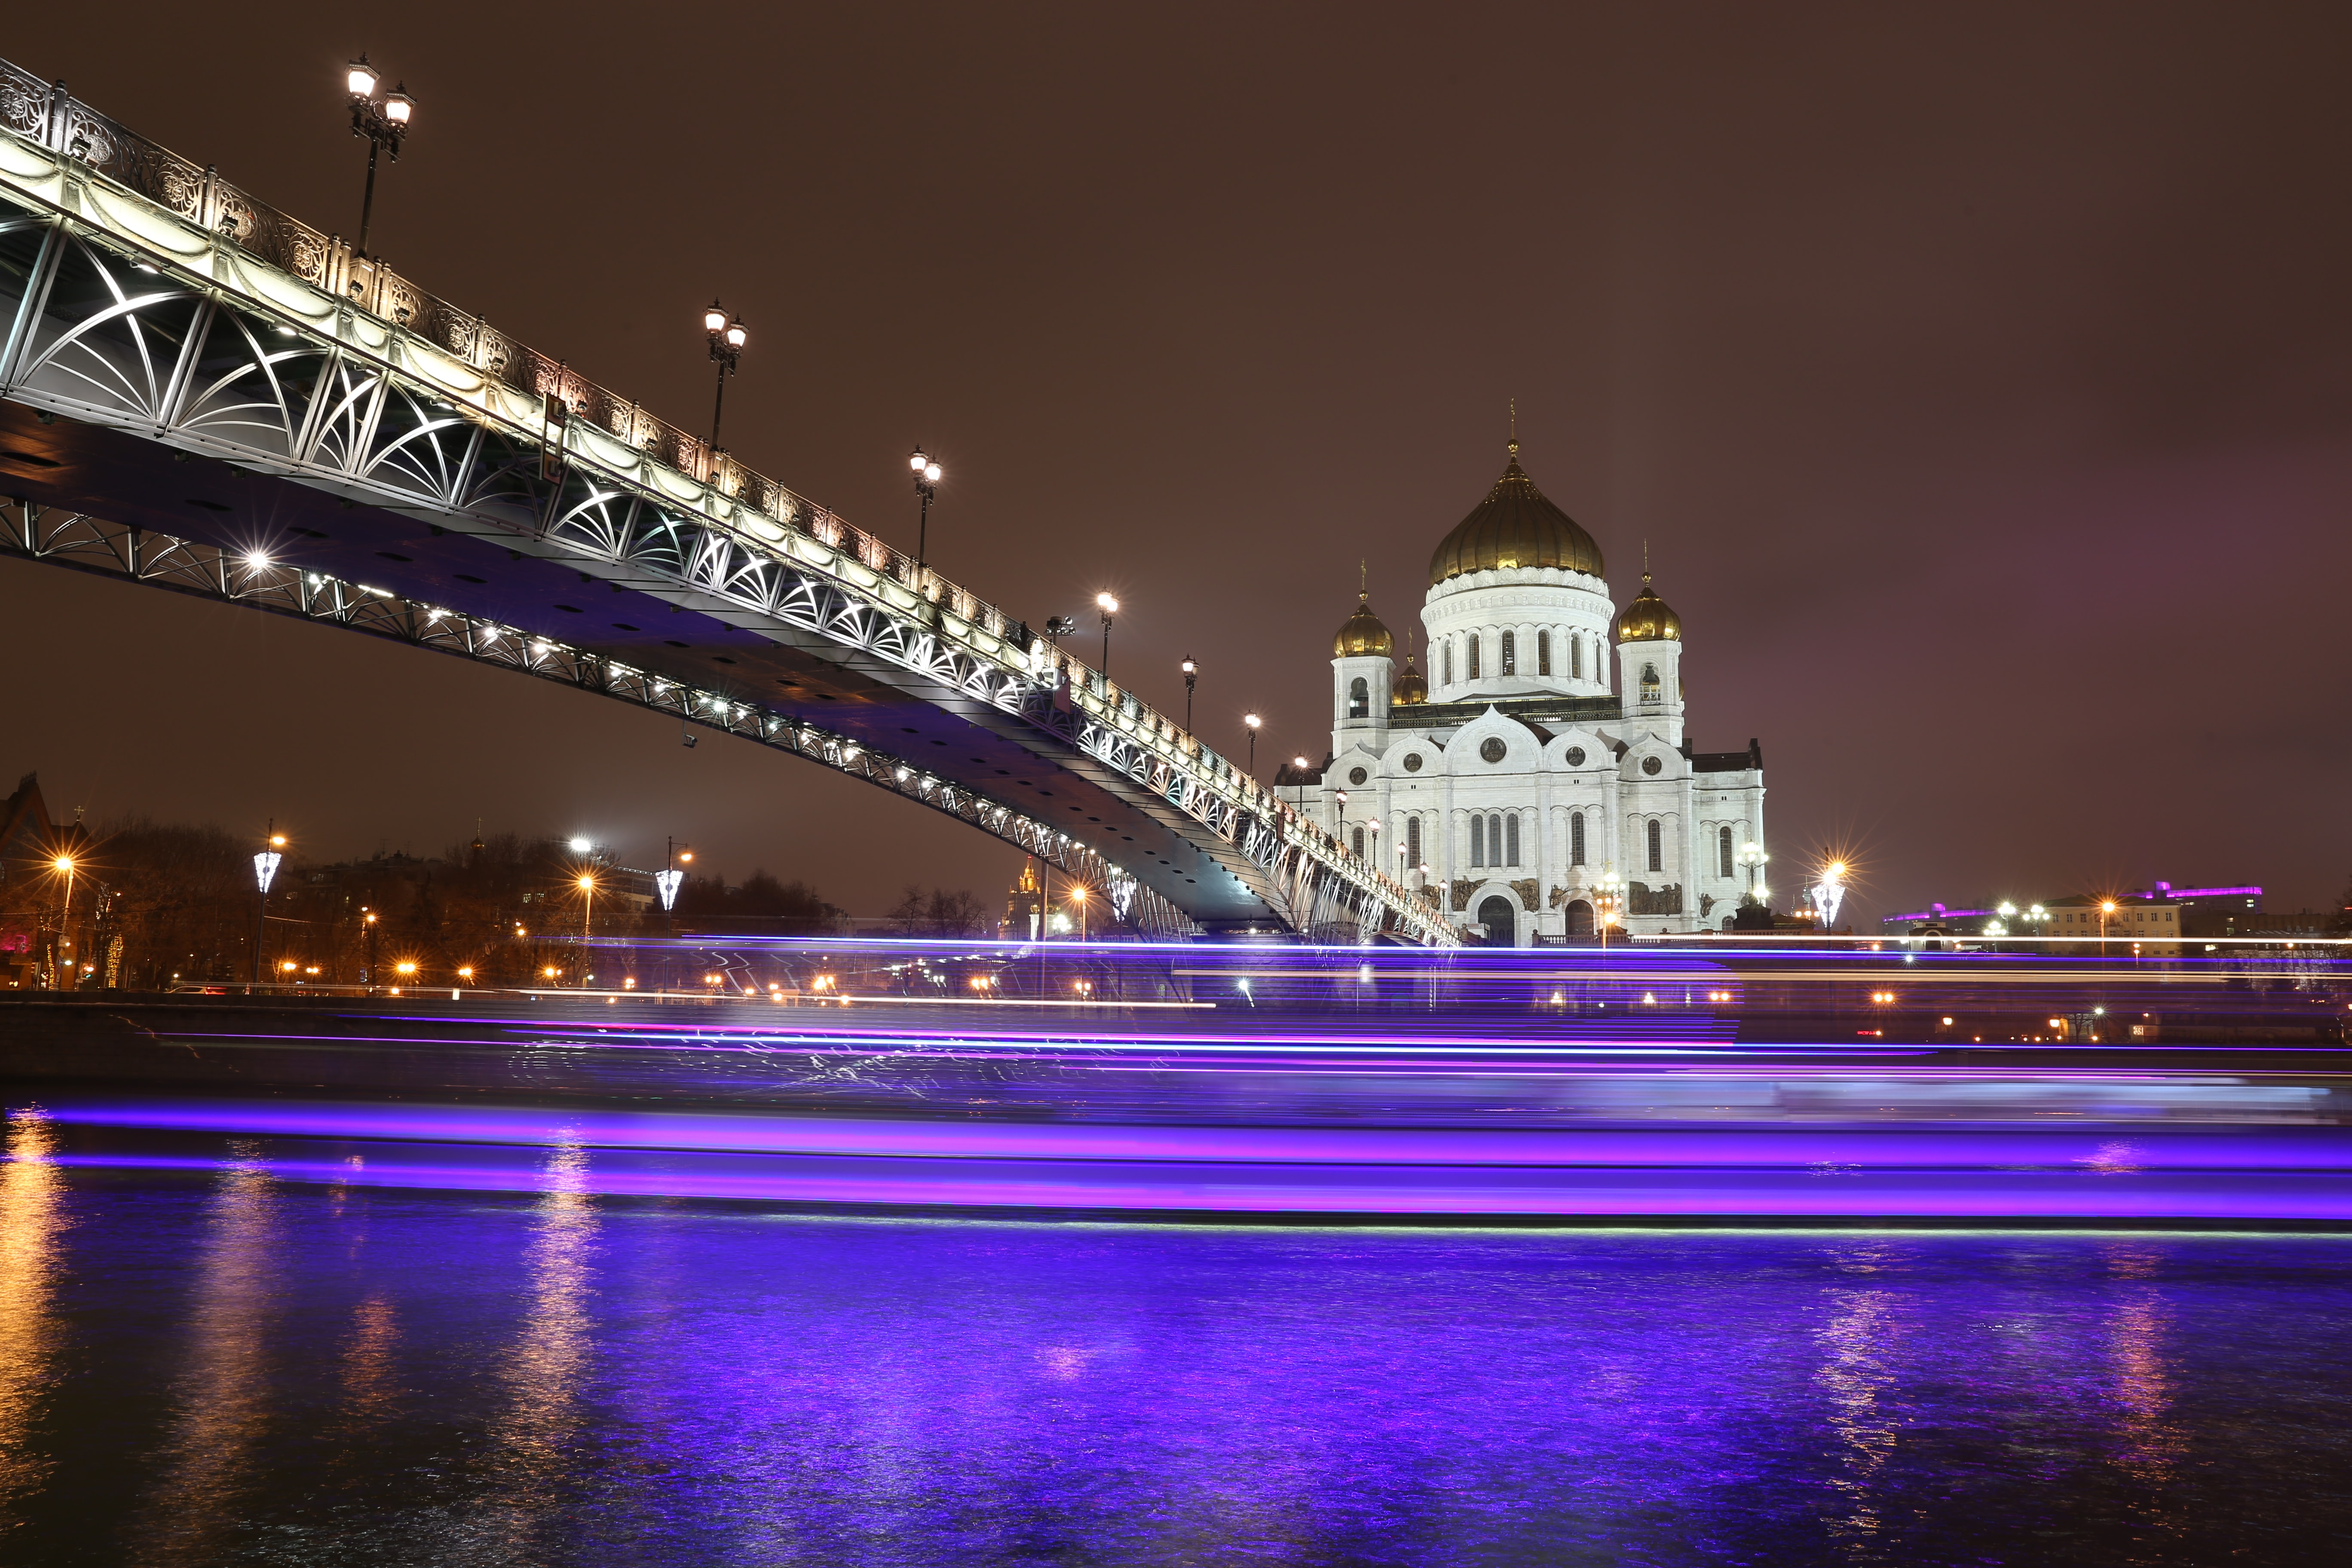 Water glows purple below an ornate bridge and building